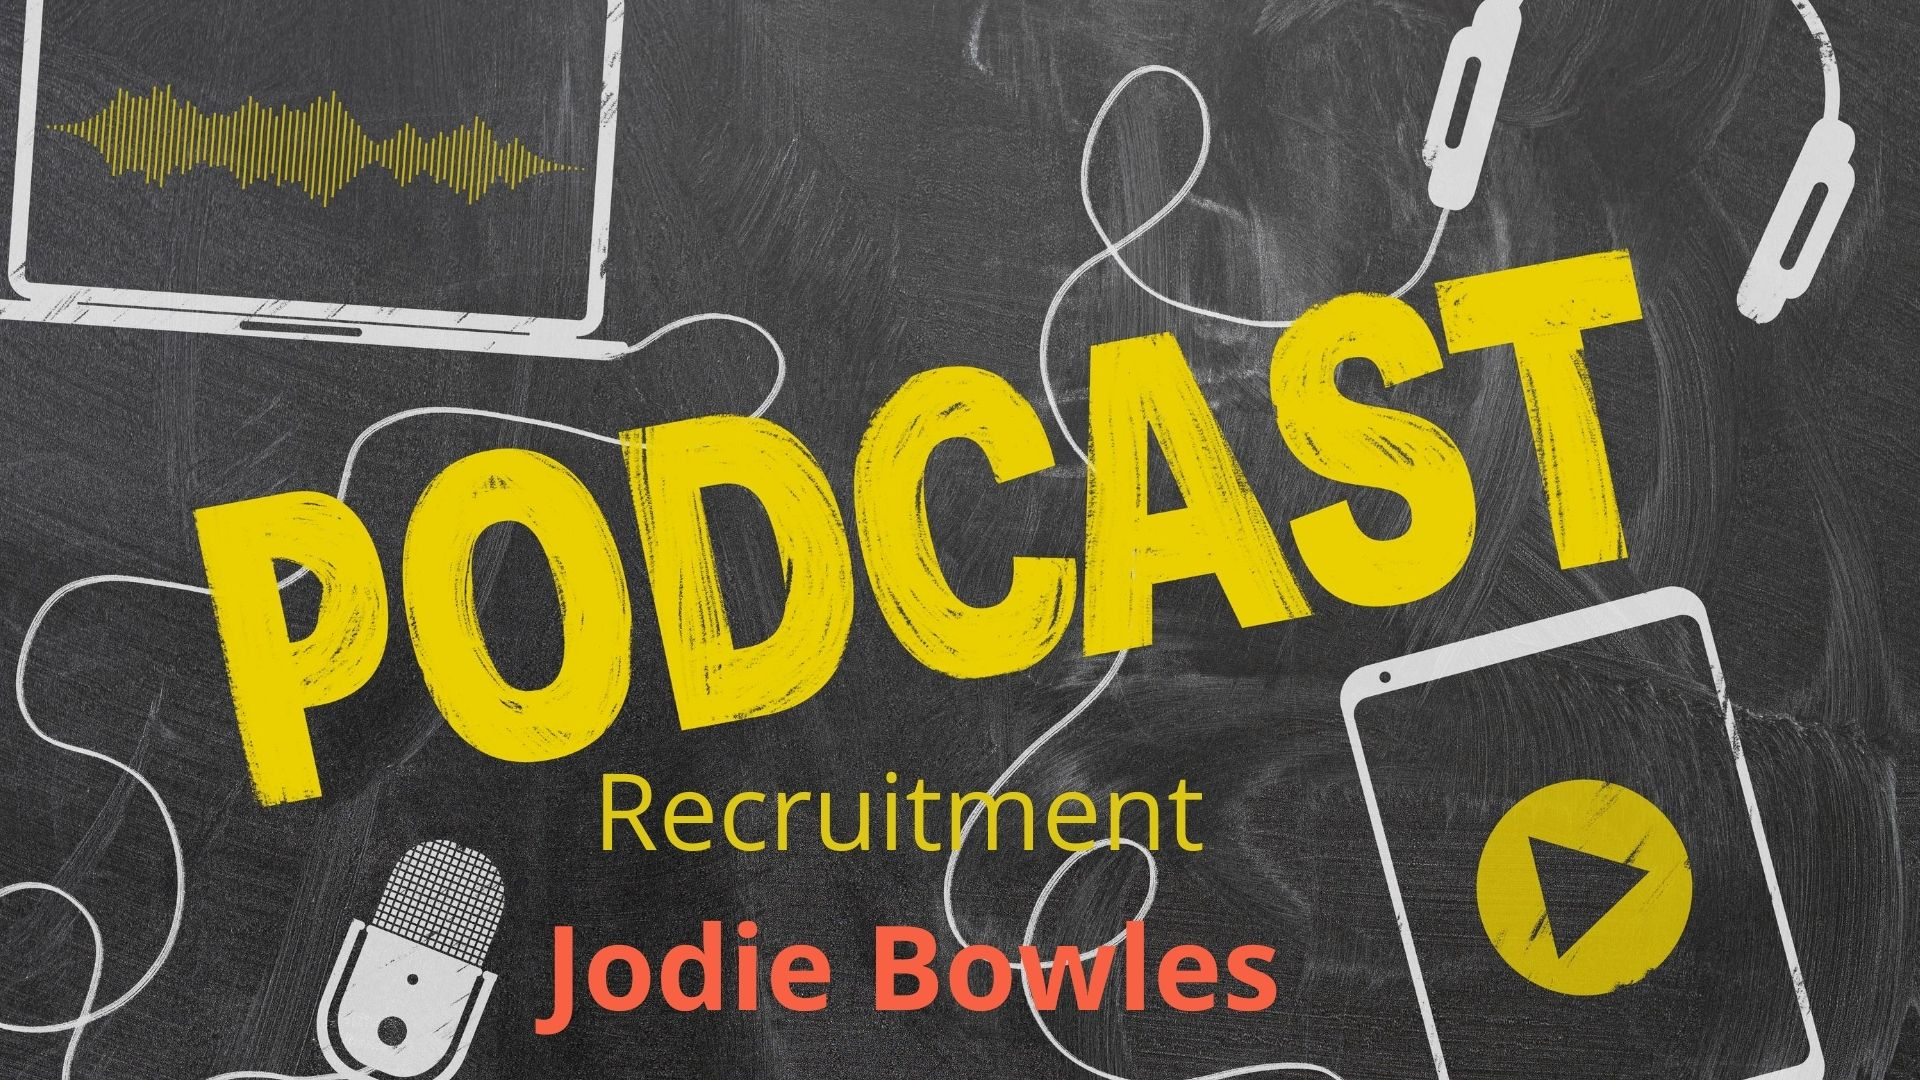 Podcast with HR expert Jodie Bowles - a blackboard with the word Podcast written on it with a graphic of headphones, a mobile phone and wires